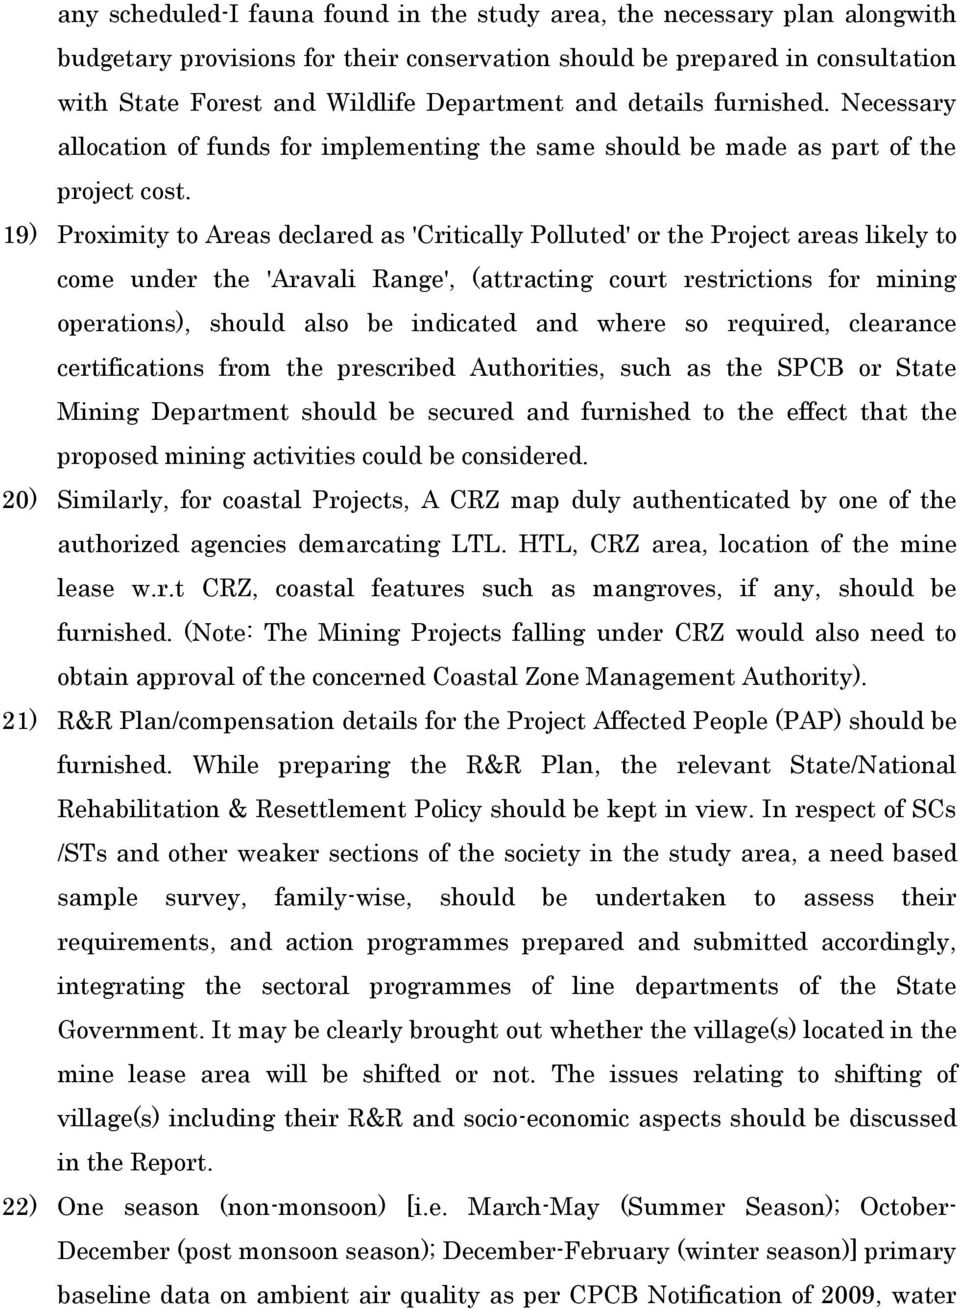 19) Proximity to Areas declared as 'Critically Polluted' or the Project areas likely to come under the 'Aravali Range', (attracting court restrictions for mining operations), should also be indicated